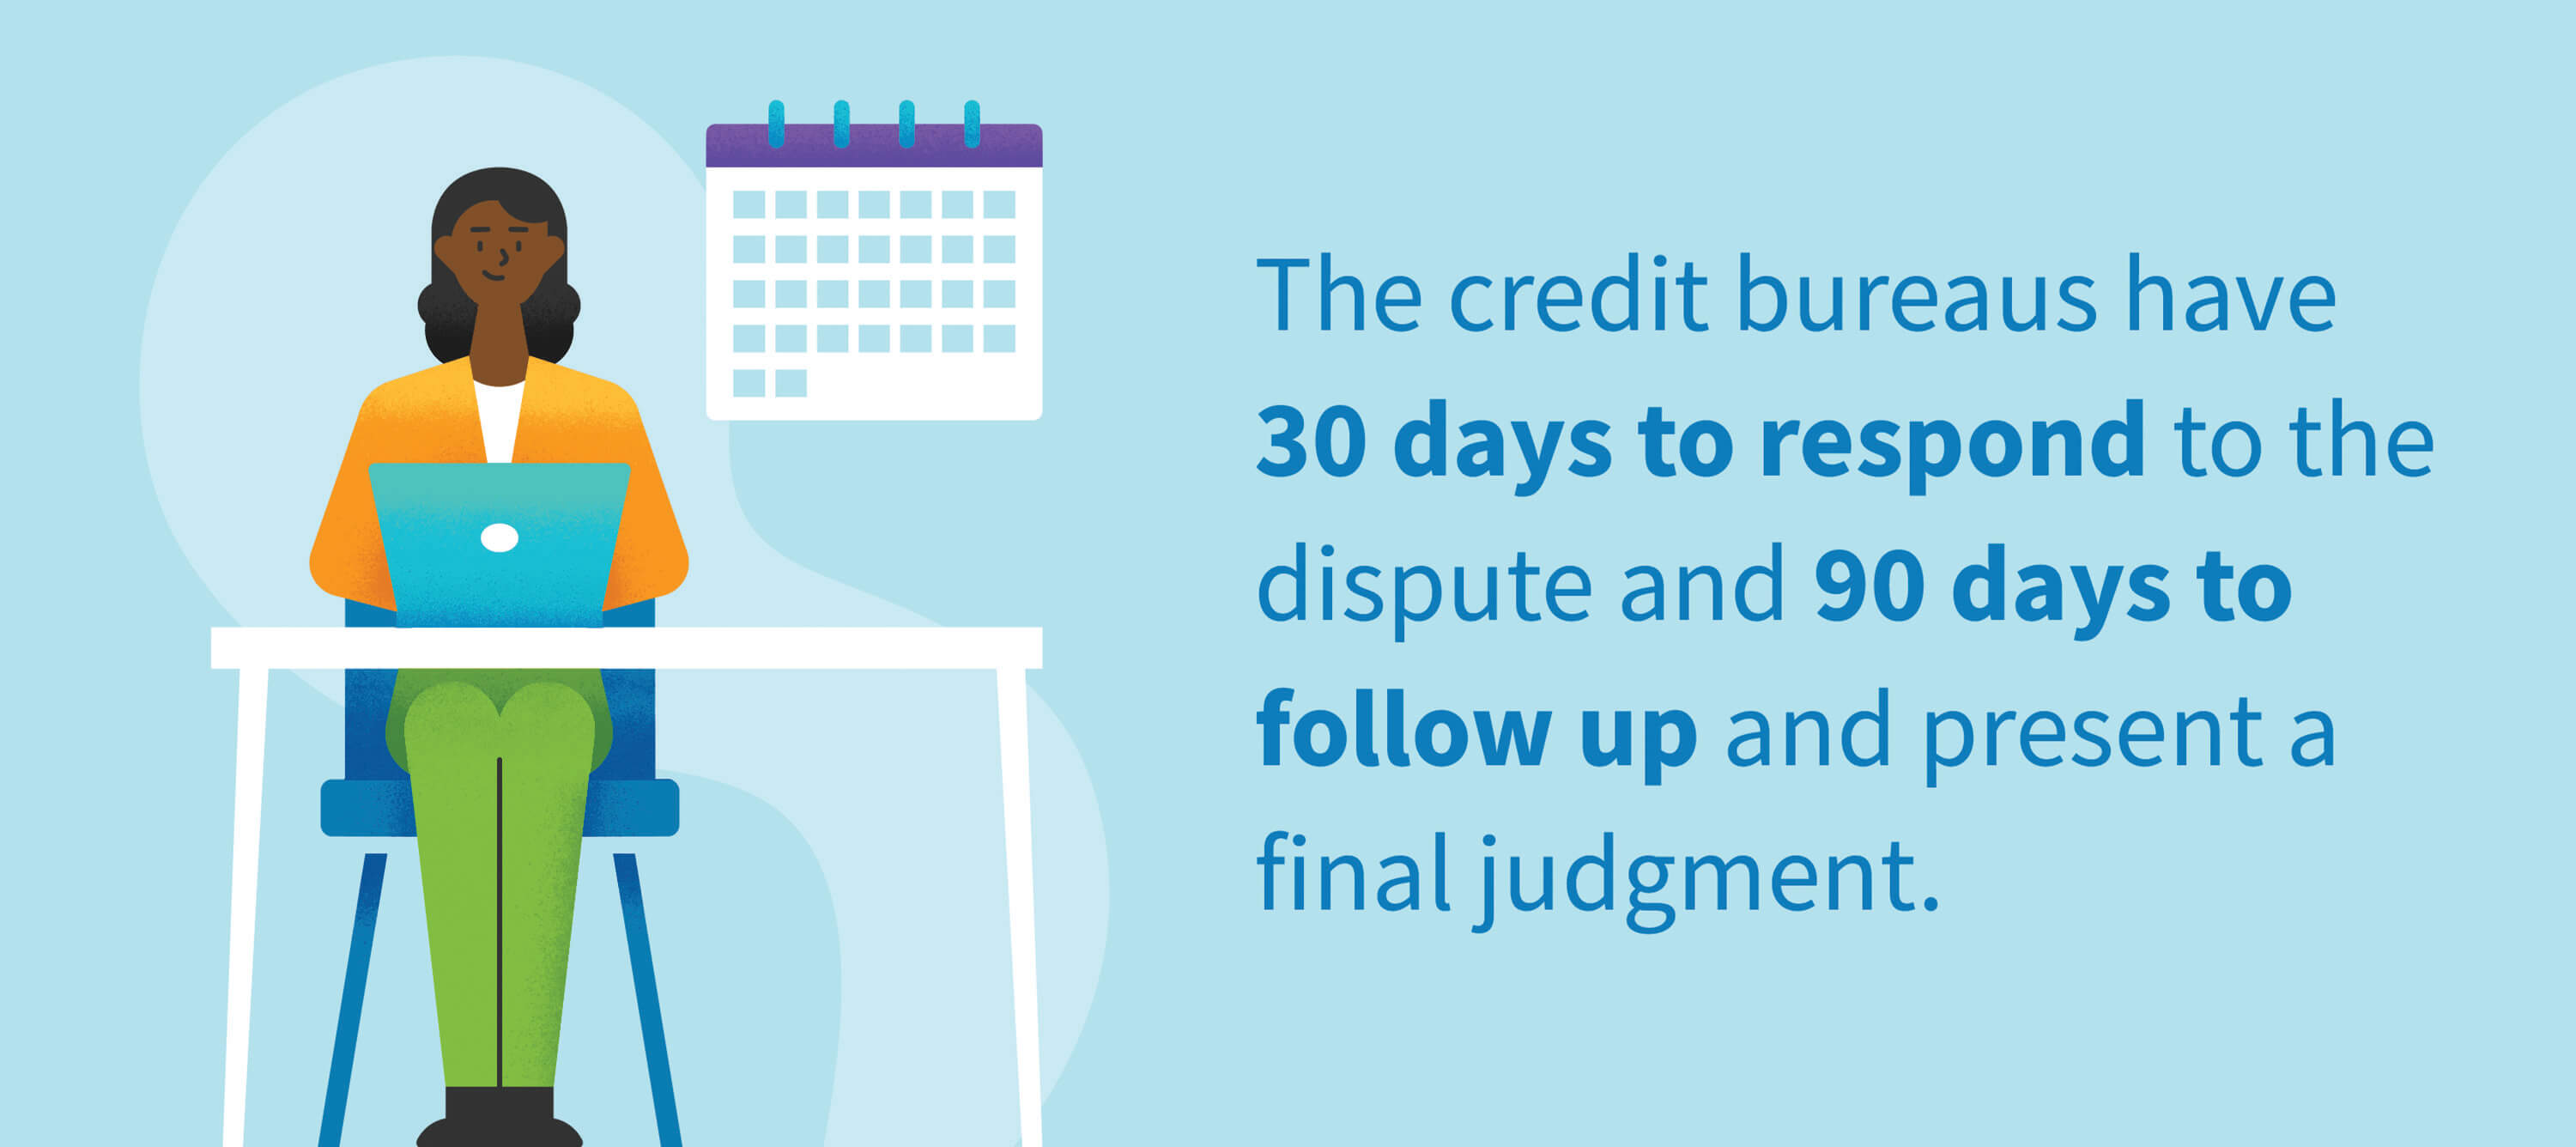 The credit bureaus have 30 days to respond to the dispute and 90 days to follow up and present a final judgement.